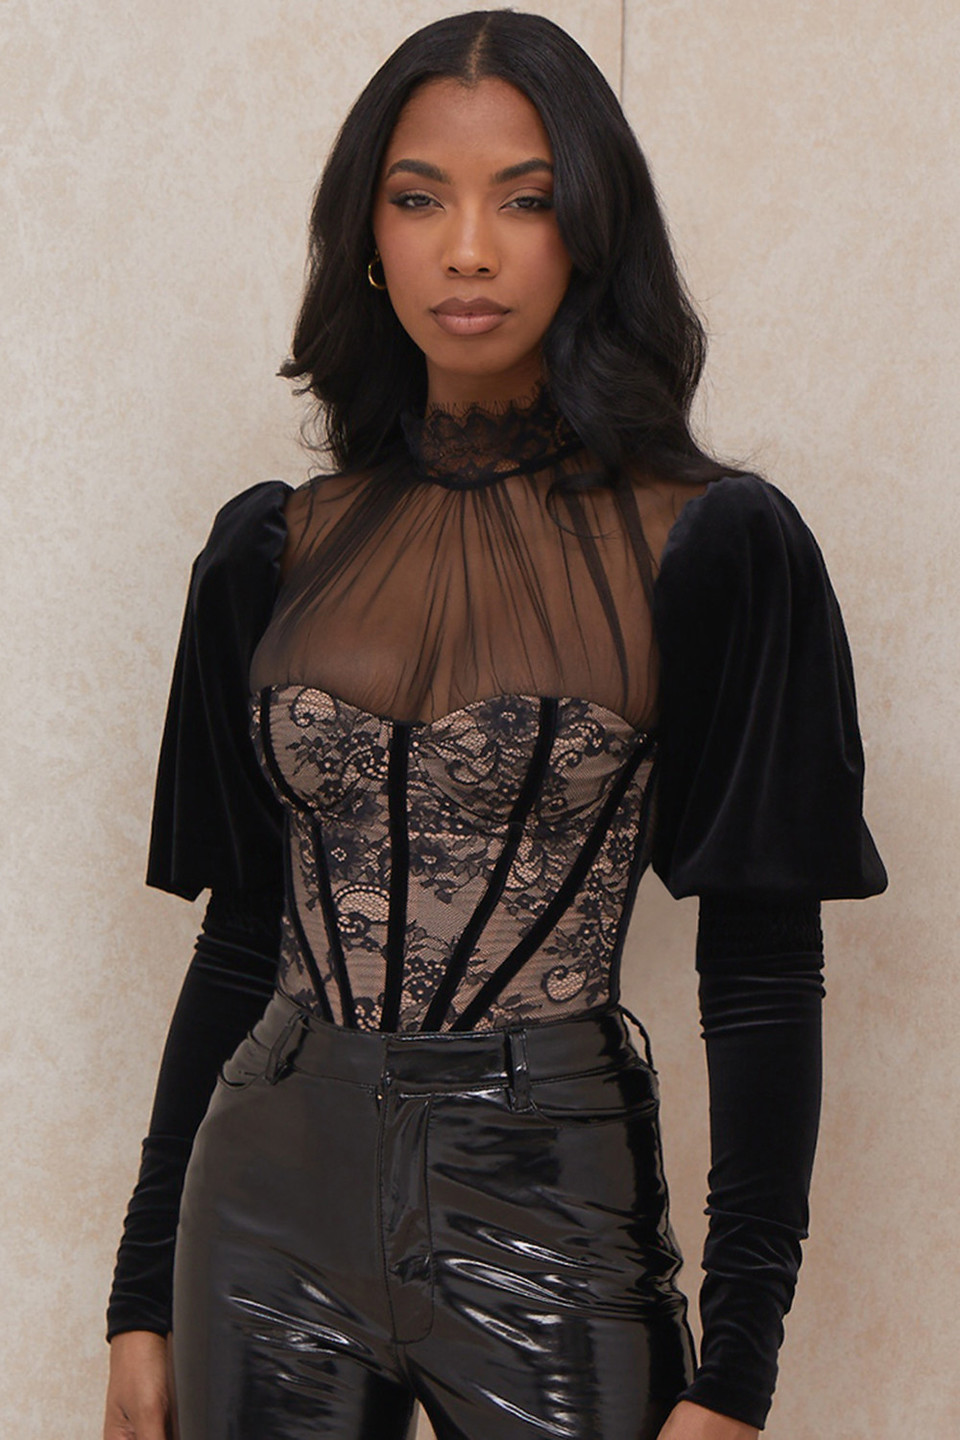 Athenea Black Lace Bodysuit